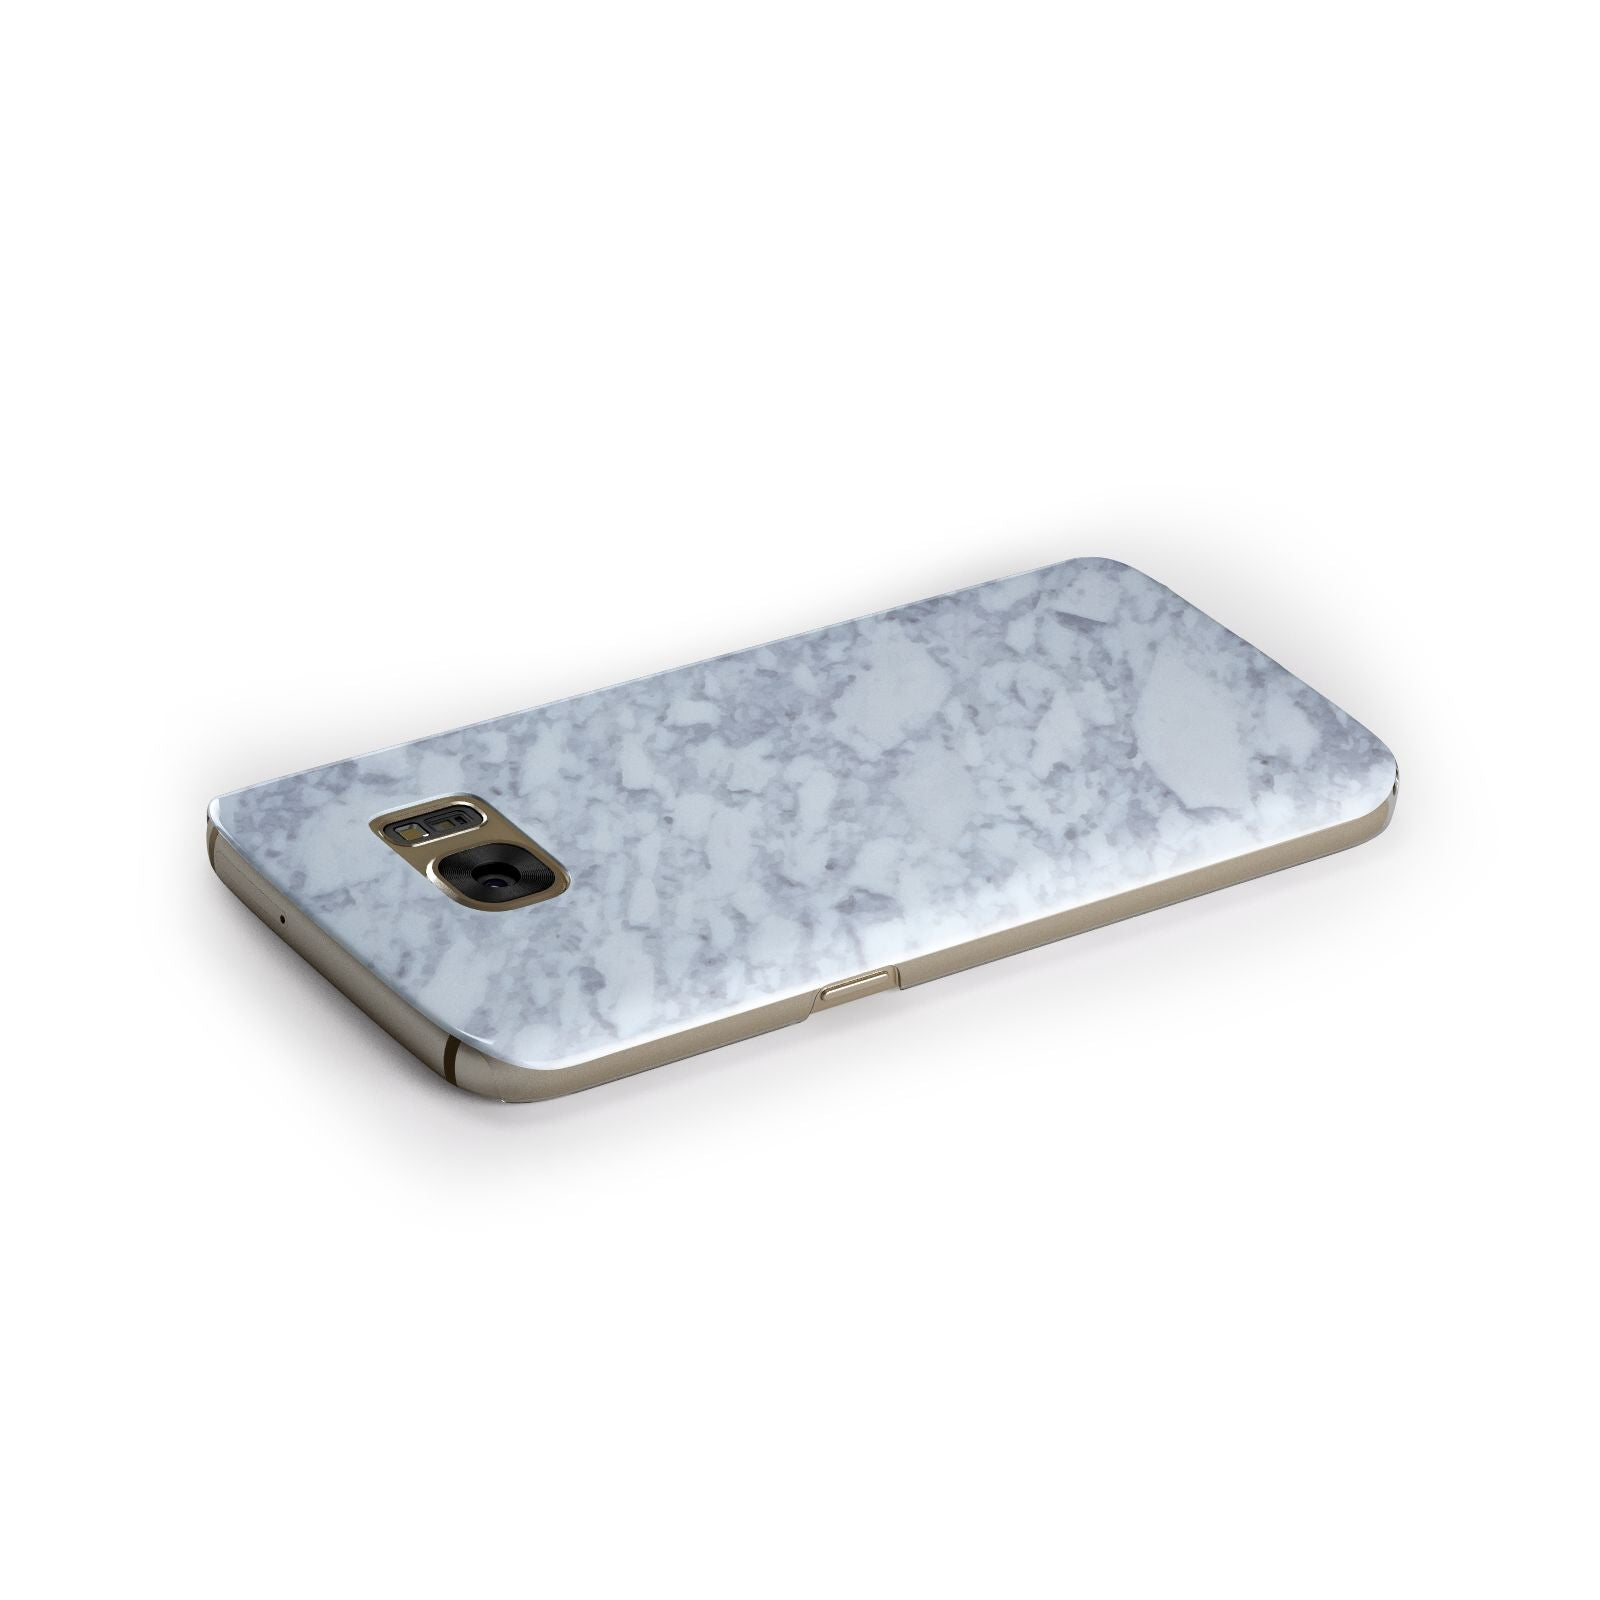 Faux Marble Grey 2 Samsung Galaxy Case Side Close Up